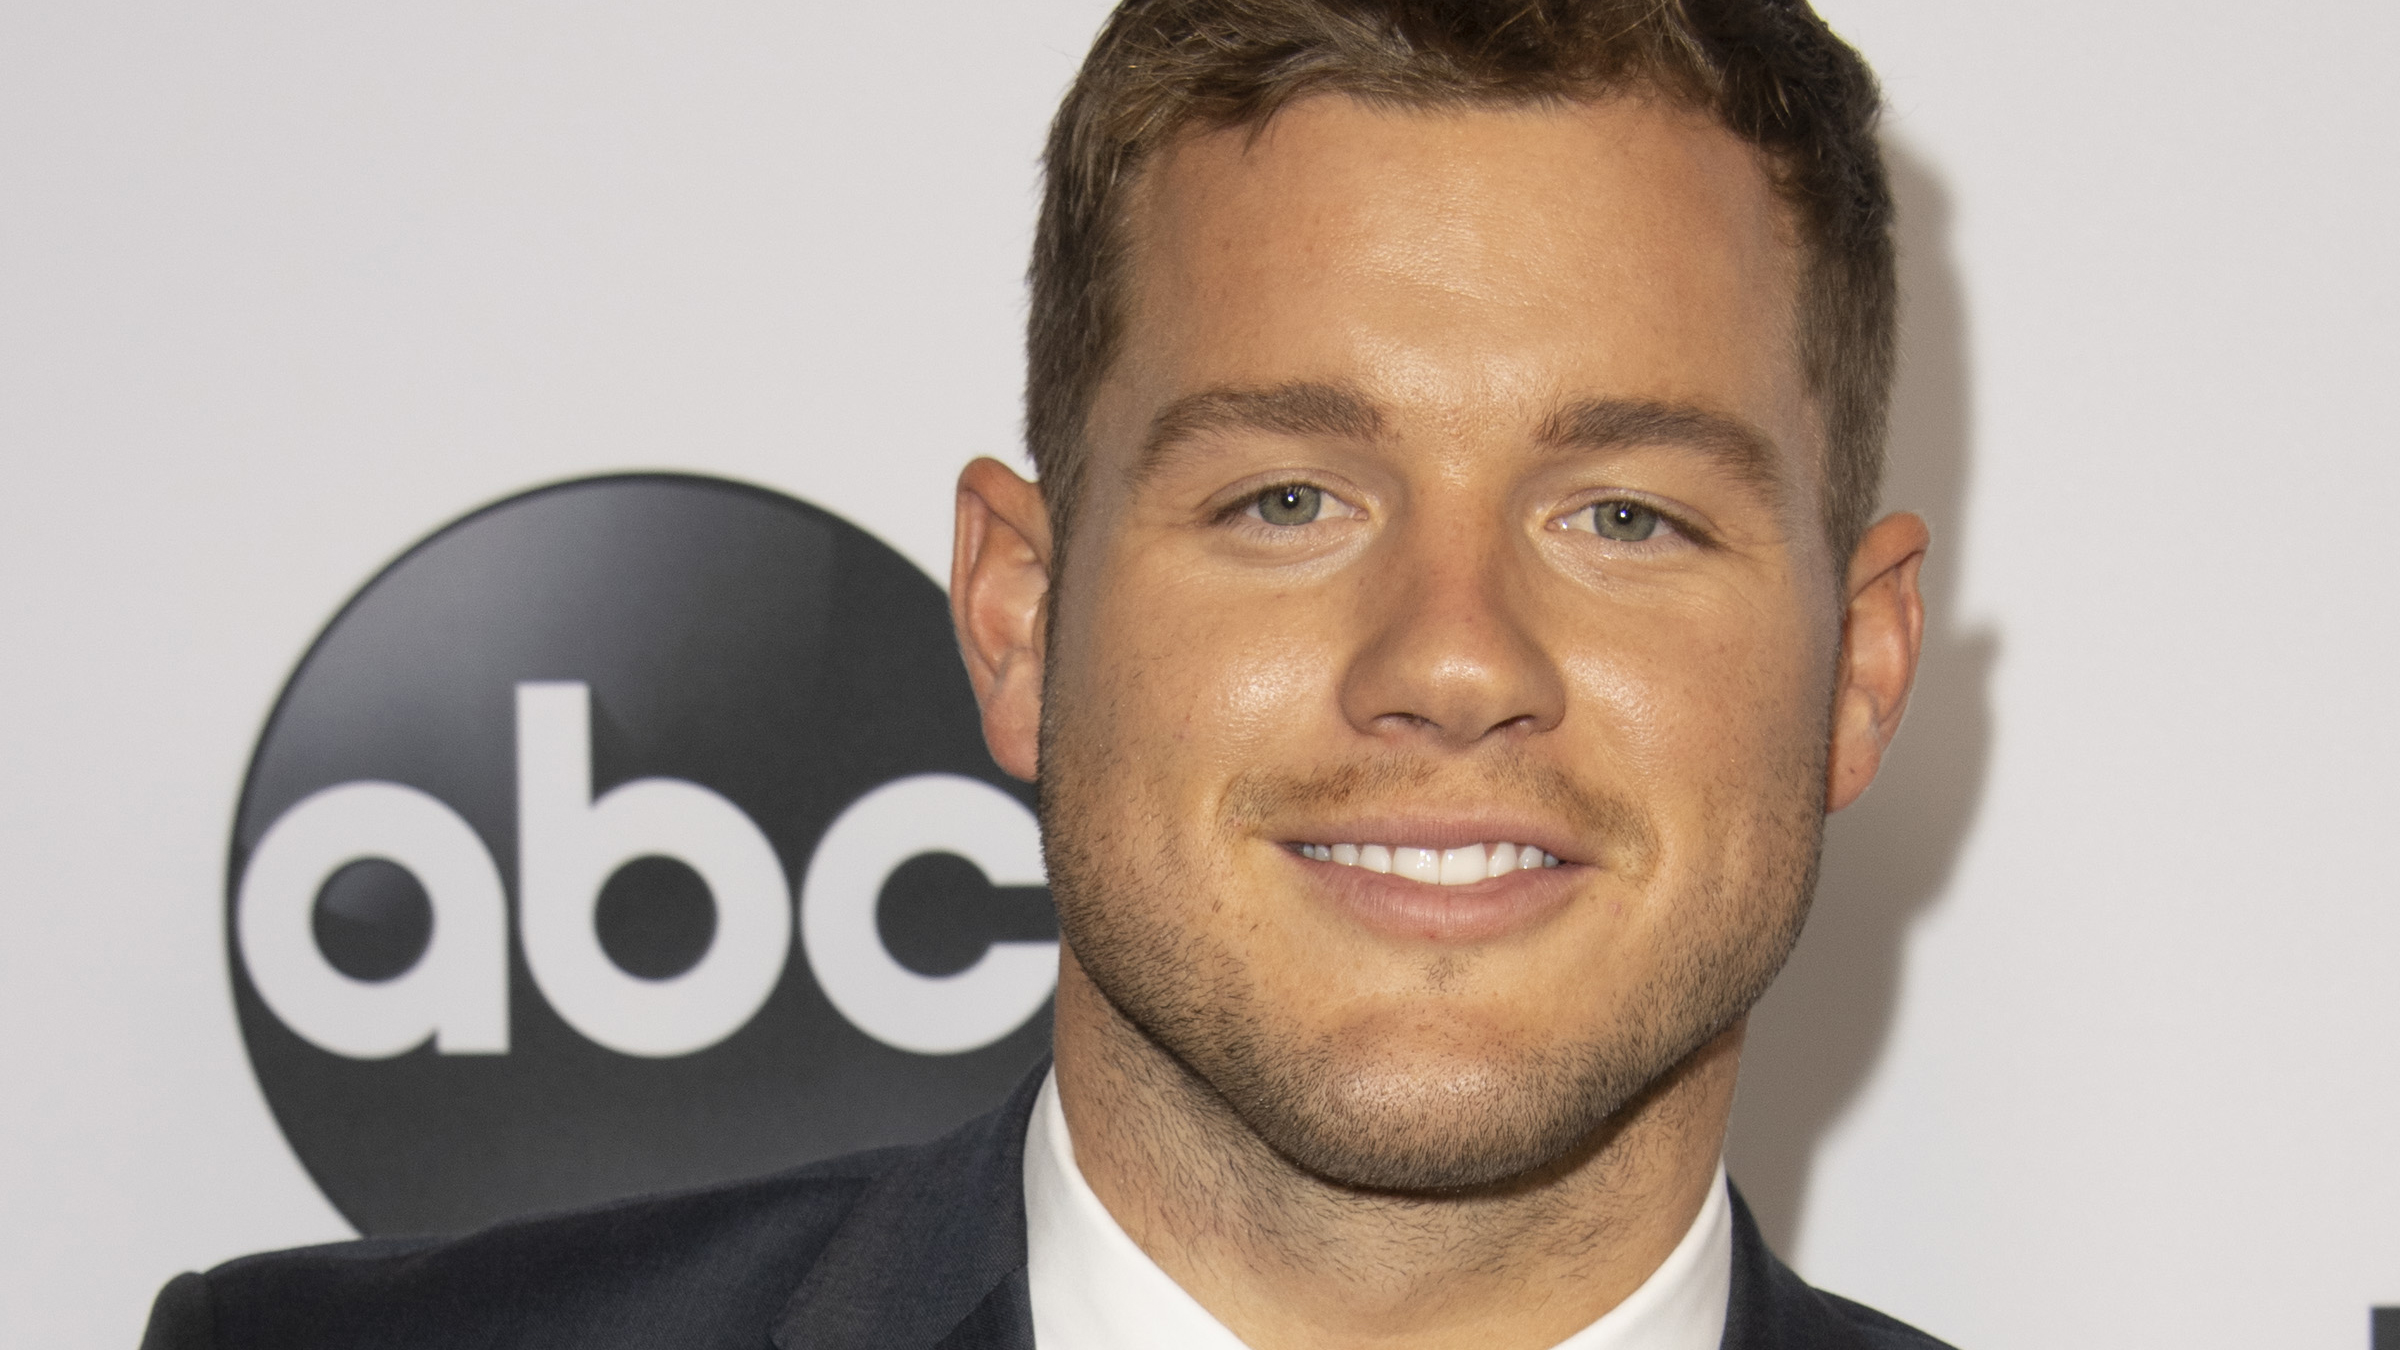 Photo of 'Bachelor' star Colton Underwood on coronavirus symptoms: 'It got scary' | Fox News